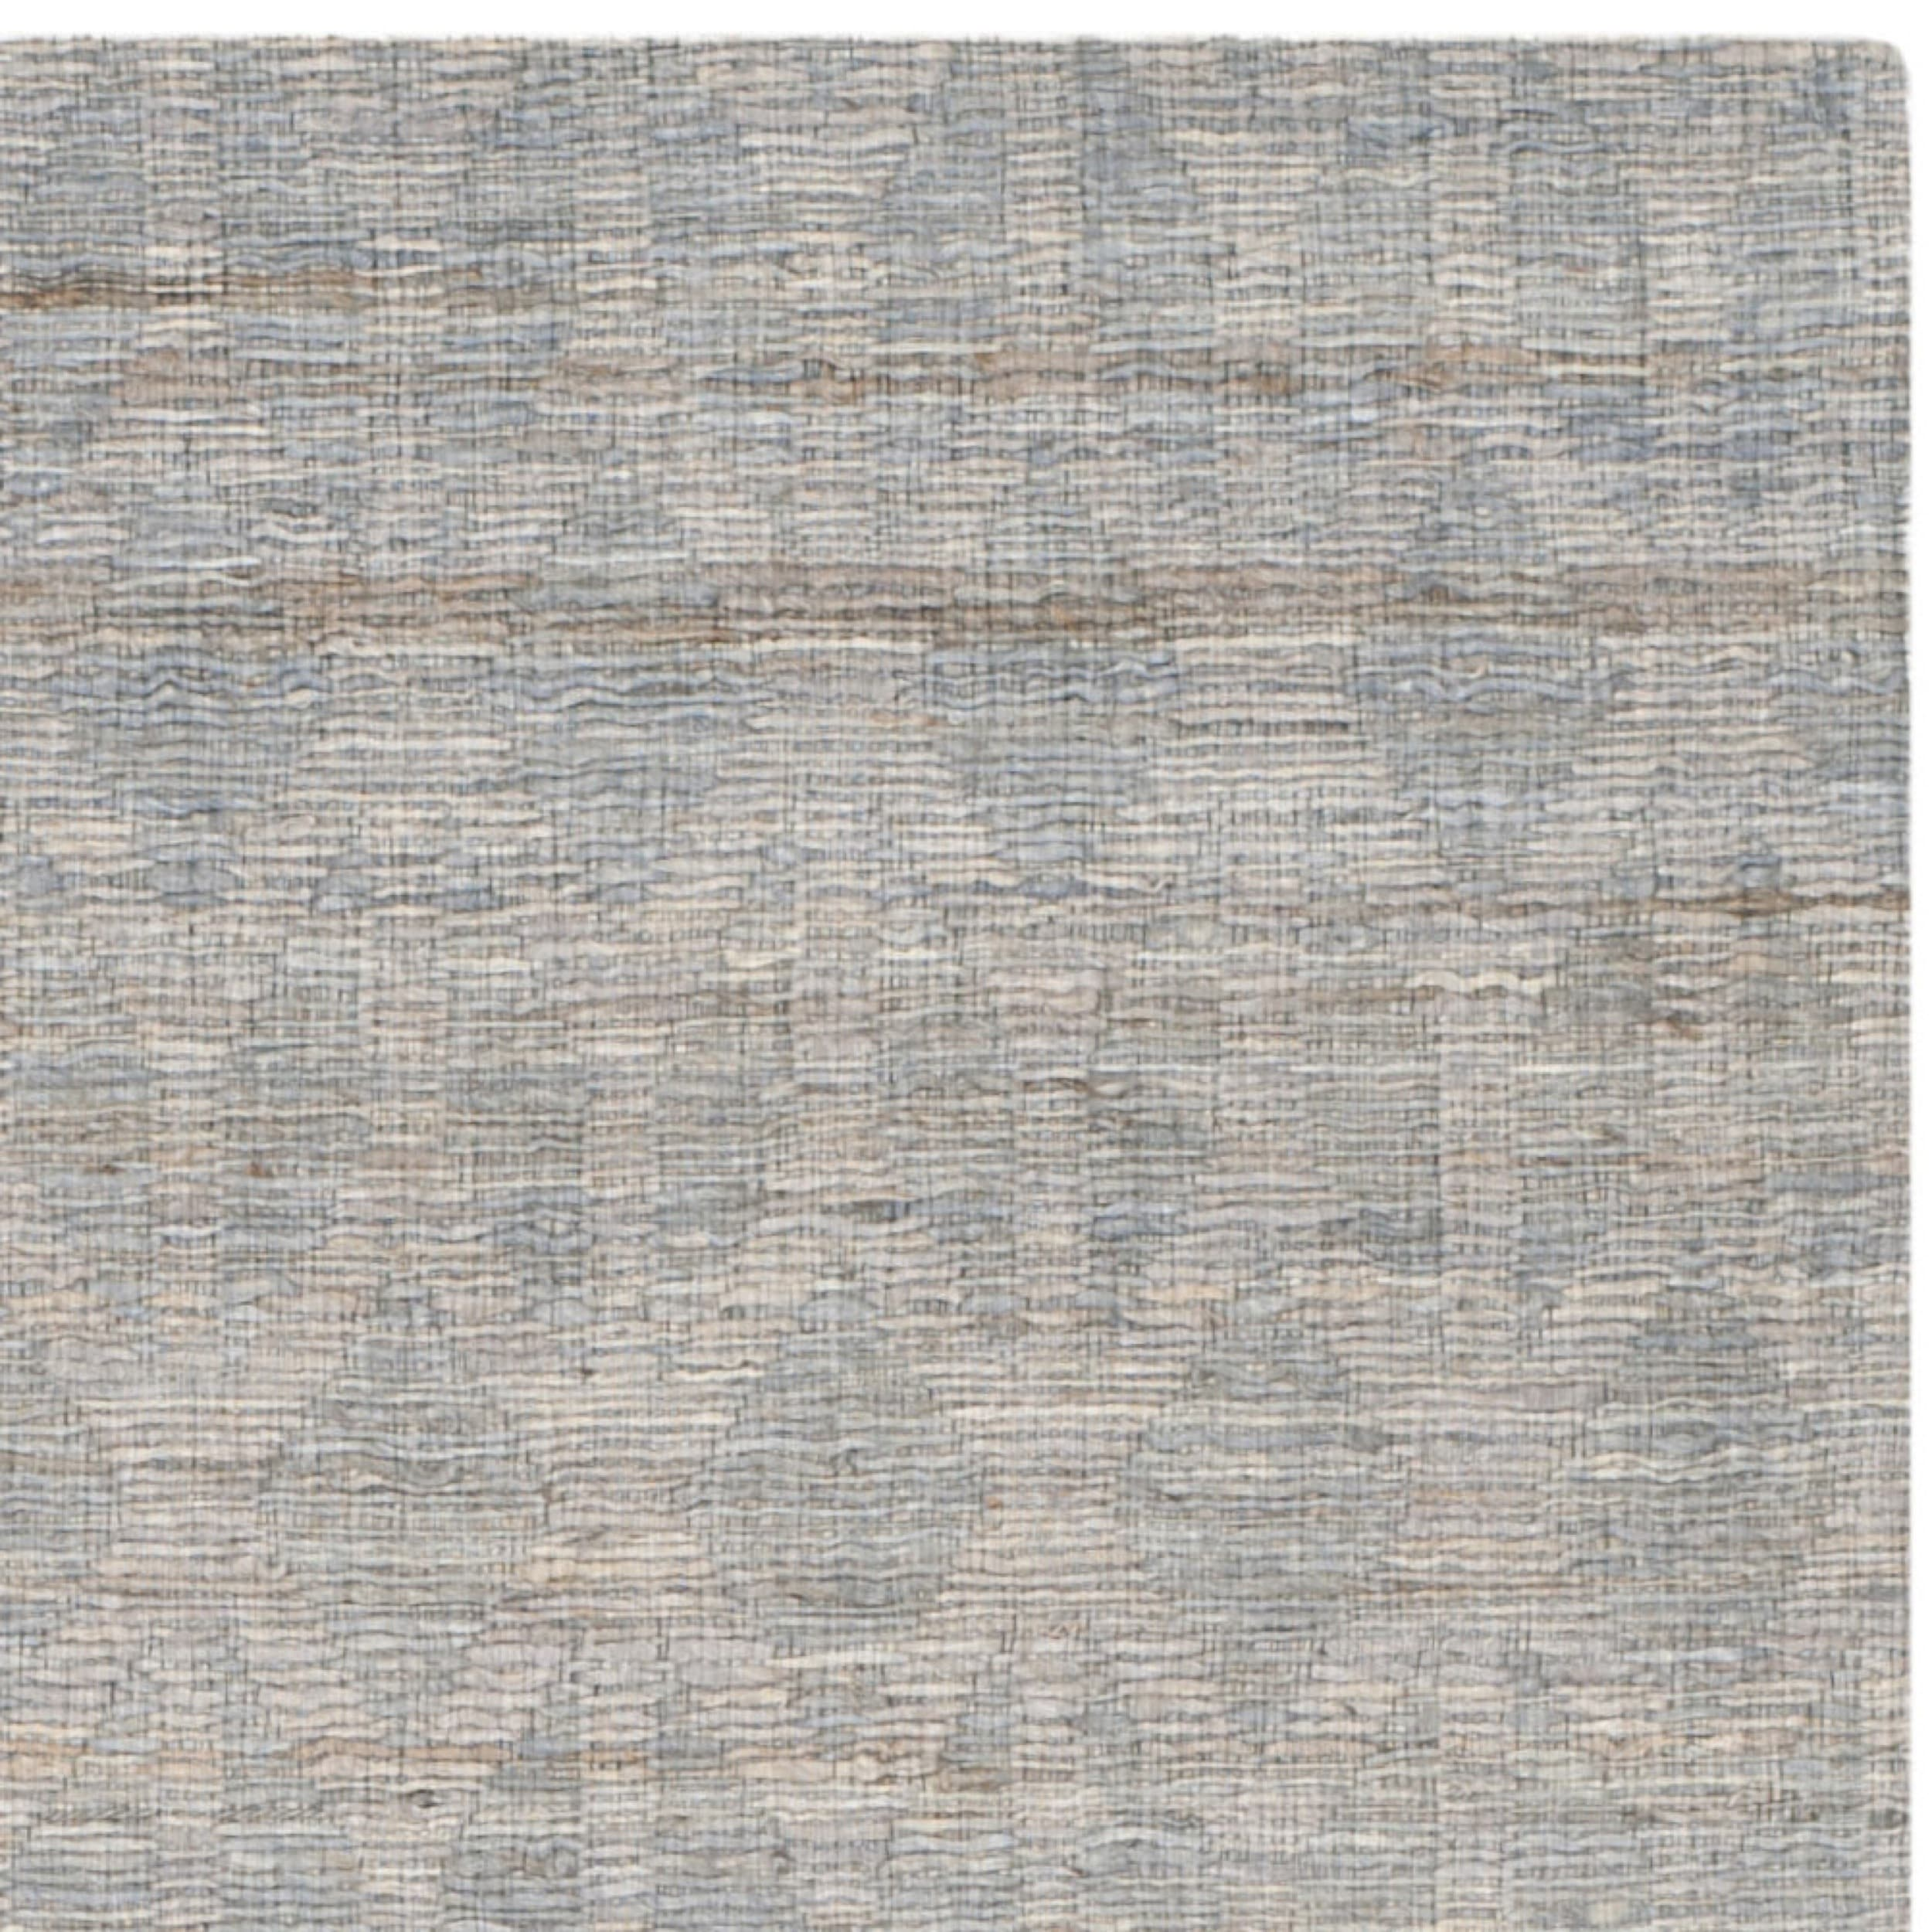 Safavieh Cape Cod Handmade Grey Gold Jute Natural Fiber Rug 8 X 10 Free Shipping Today 17098344